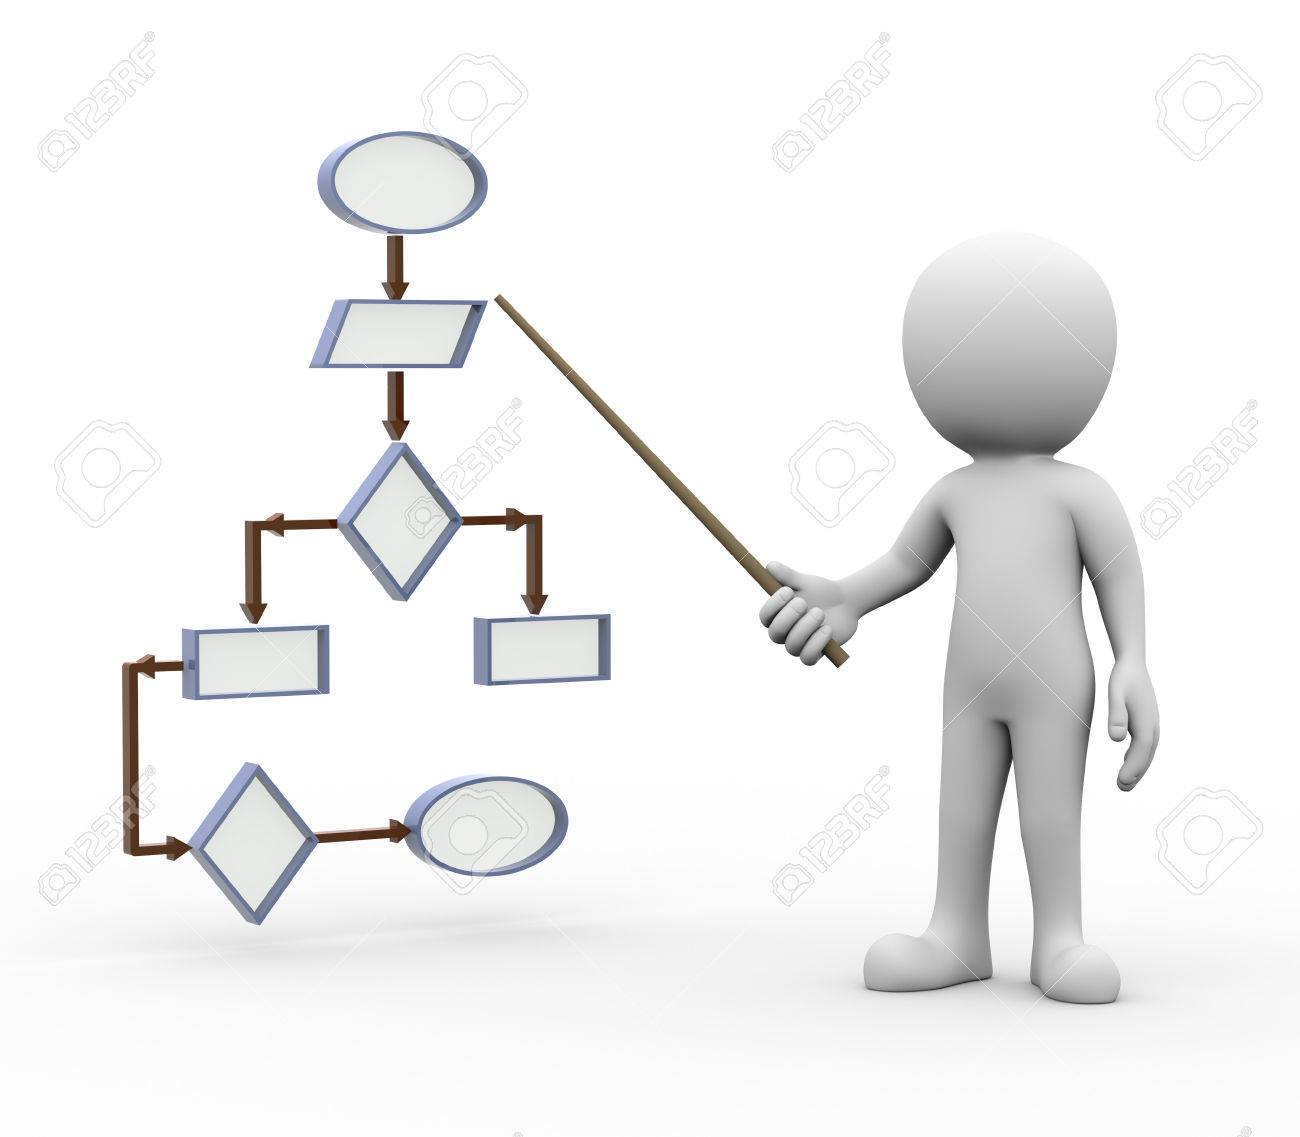 3d rendering of explaining man pointing with stick presentation 3d rendering of explaining man pointing with stick presentation of program flow chart white person nvjuhfo Choice Image